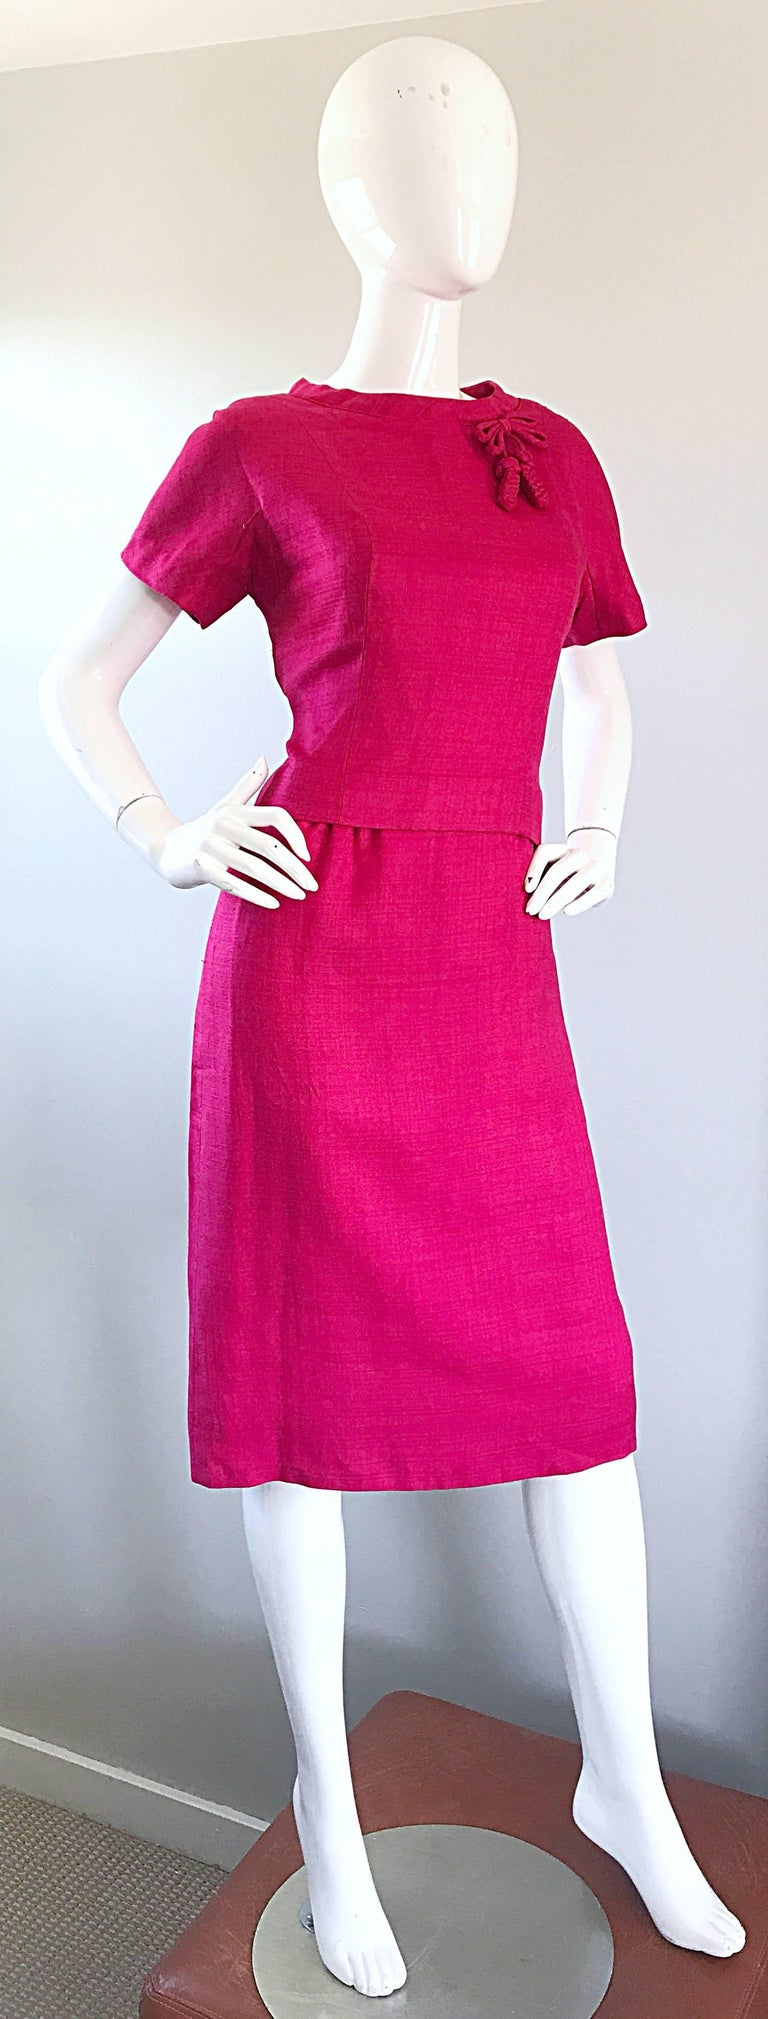 Chic 1960s Demi Couture Raspeberry Pink Silk Shift Dress and Top Vintage 60s Set 5